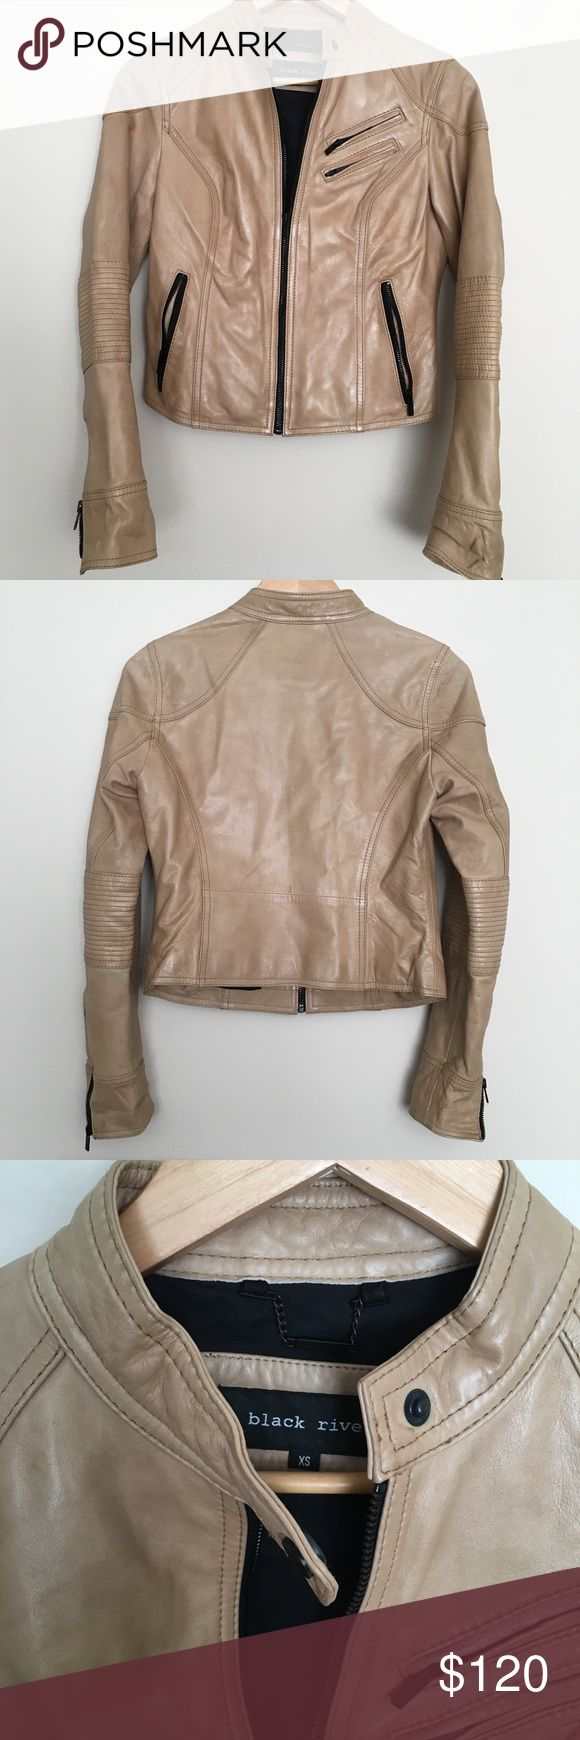 Camel leather jacket, contrast zipper In excellent condition, genuine leather made to last. Tight fit hugs your body. The jacket had a bit of room in the sleeves making it perfect for layering. Offers are encouraged! Black Rivet Jackets & Coats